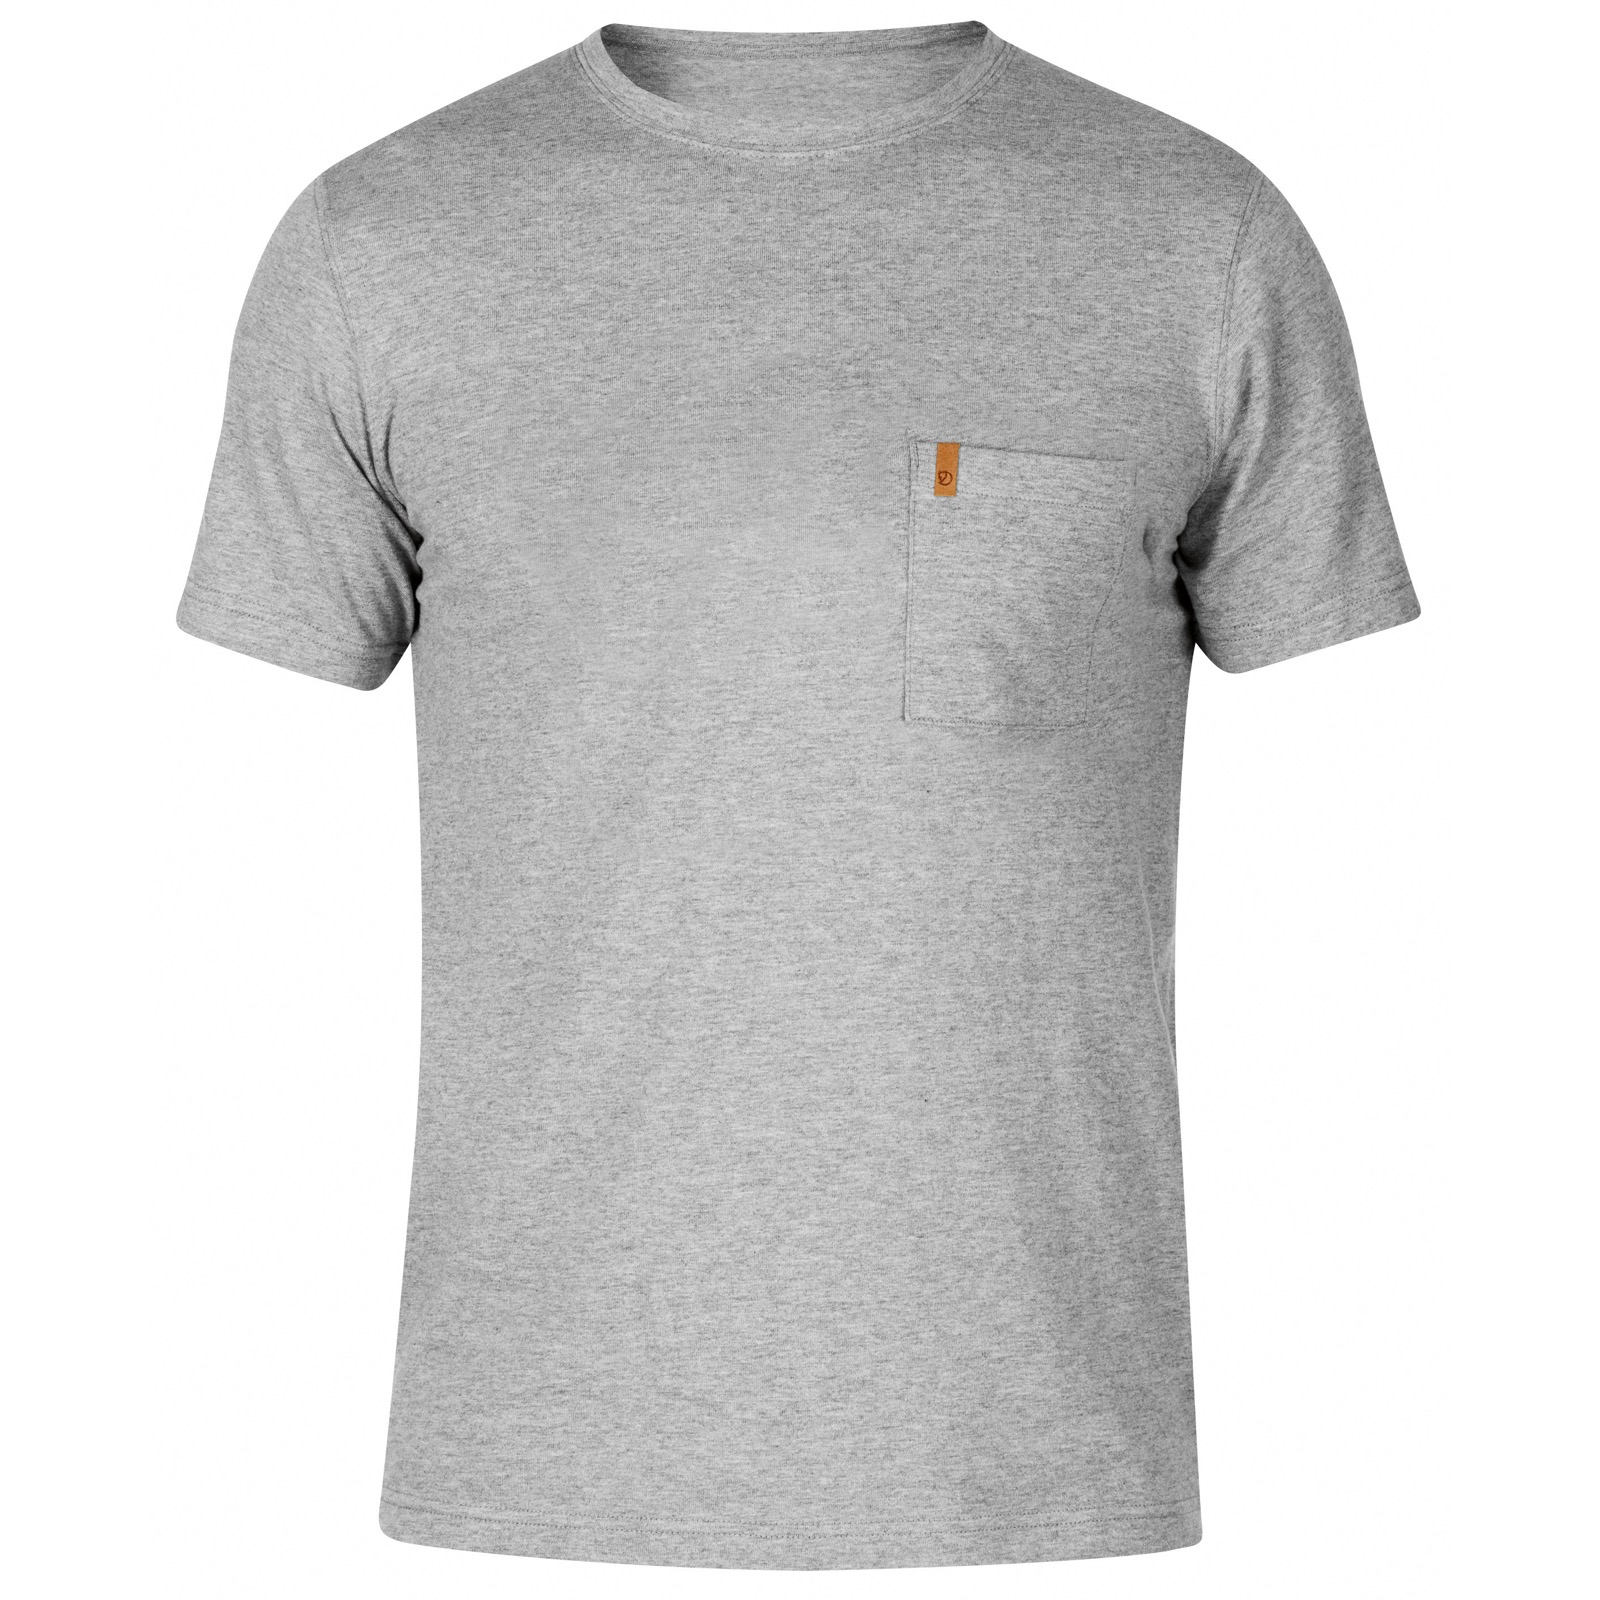 Övik Pocket T-shirt